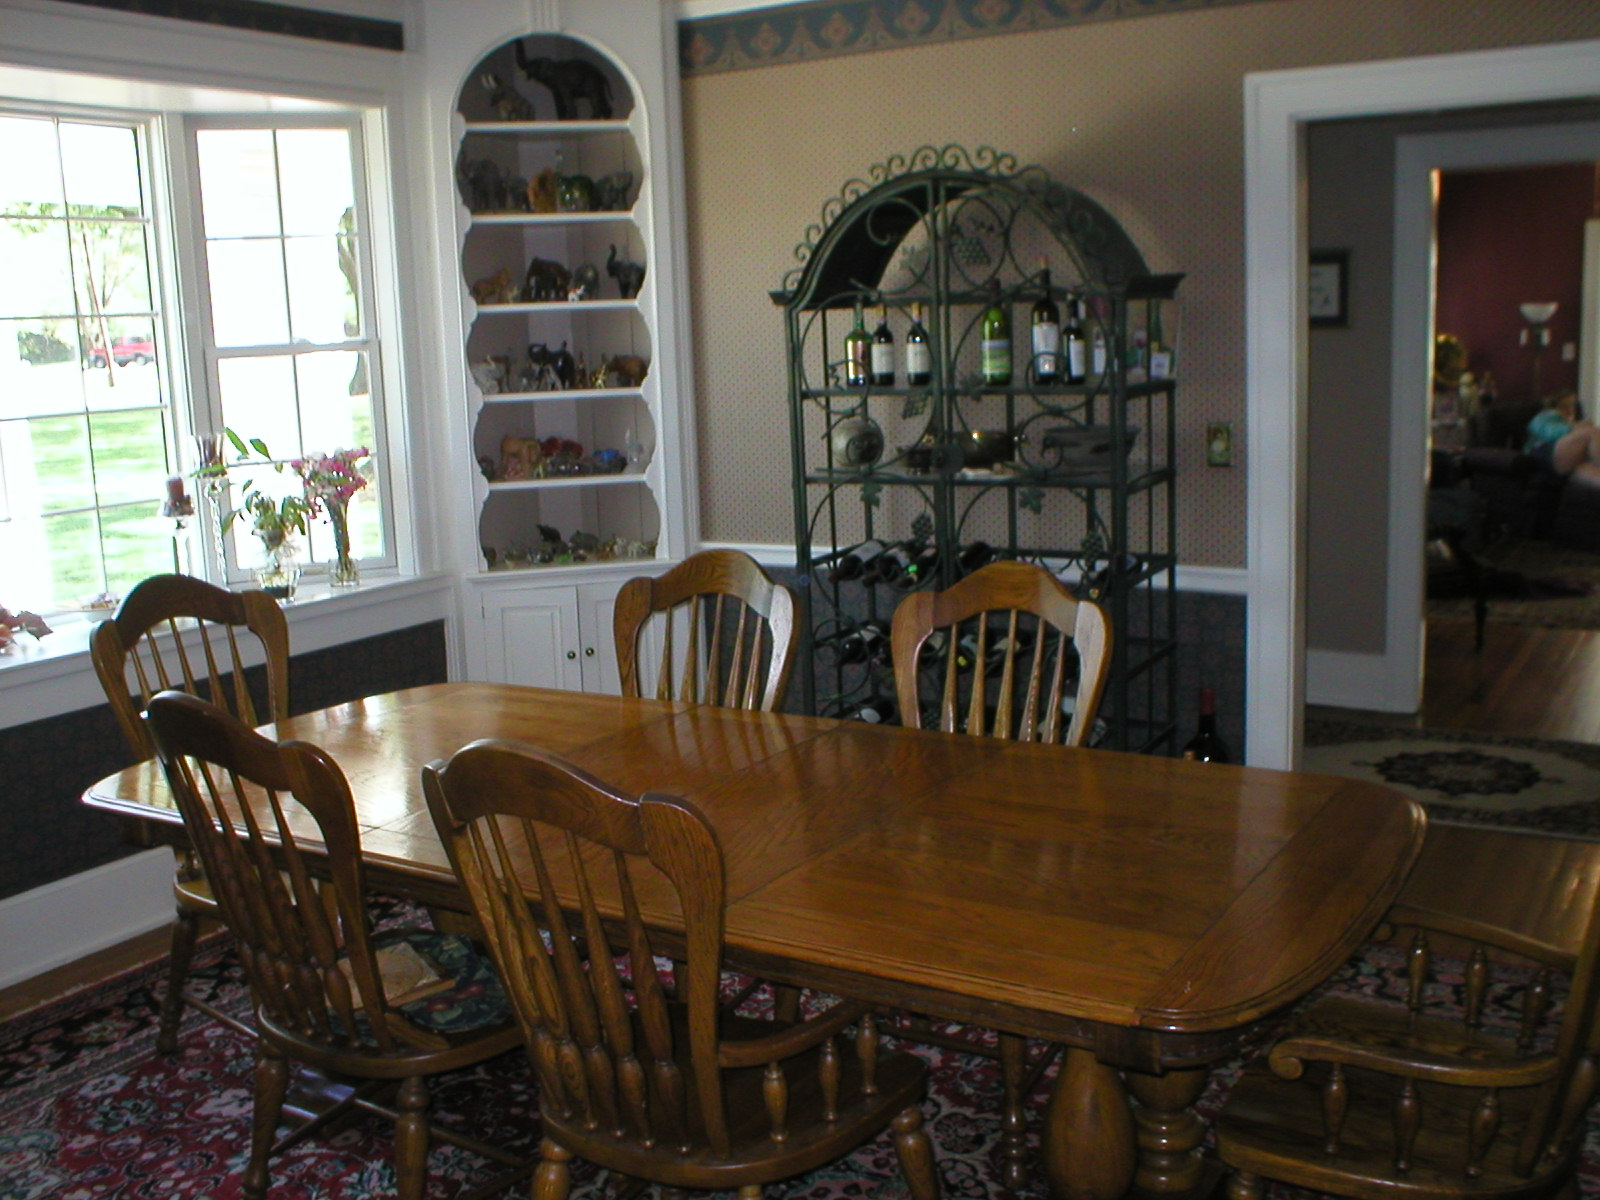 The Dining Room Has A Bay Window Looking Out To Front Yard And Park Across Street Built In Corner Cabinets Add Character This